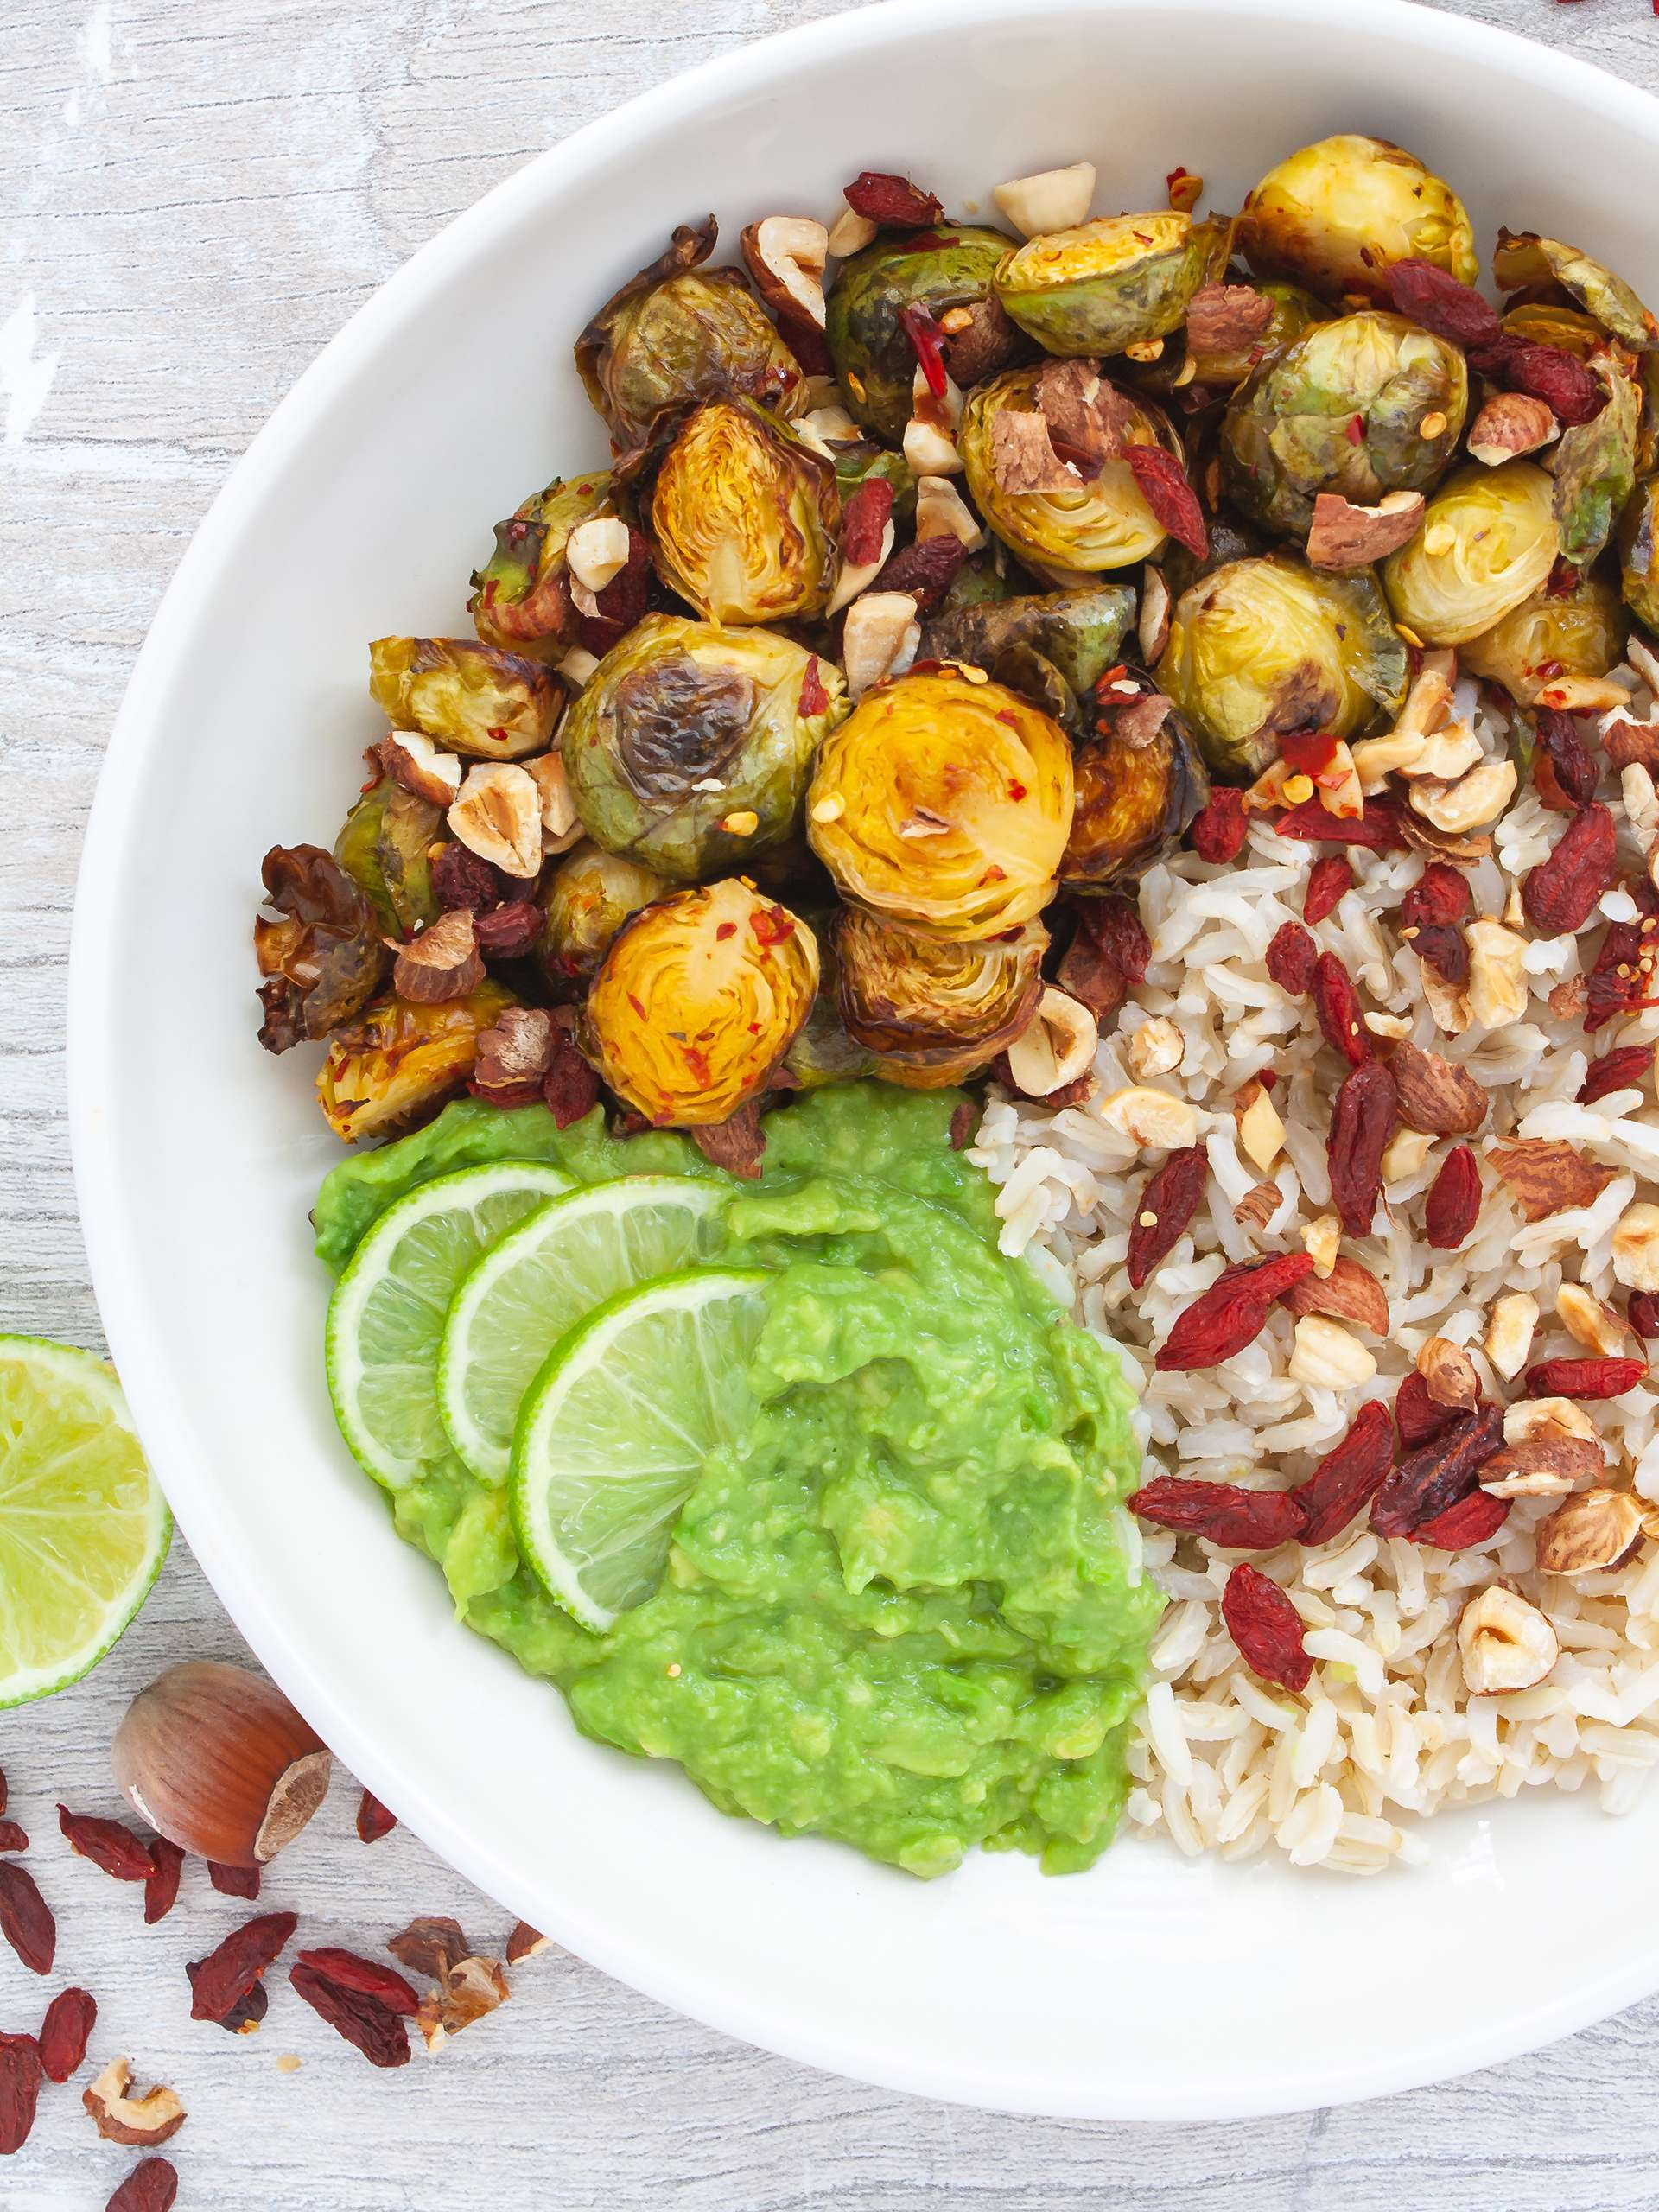 Chilli Lime Roasted Sprouts with Avocado Recipe